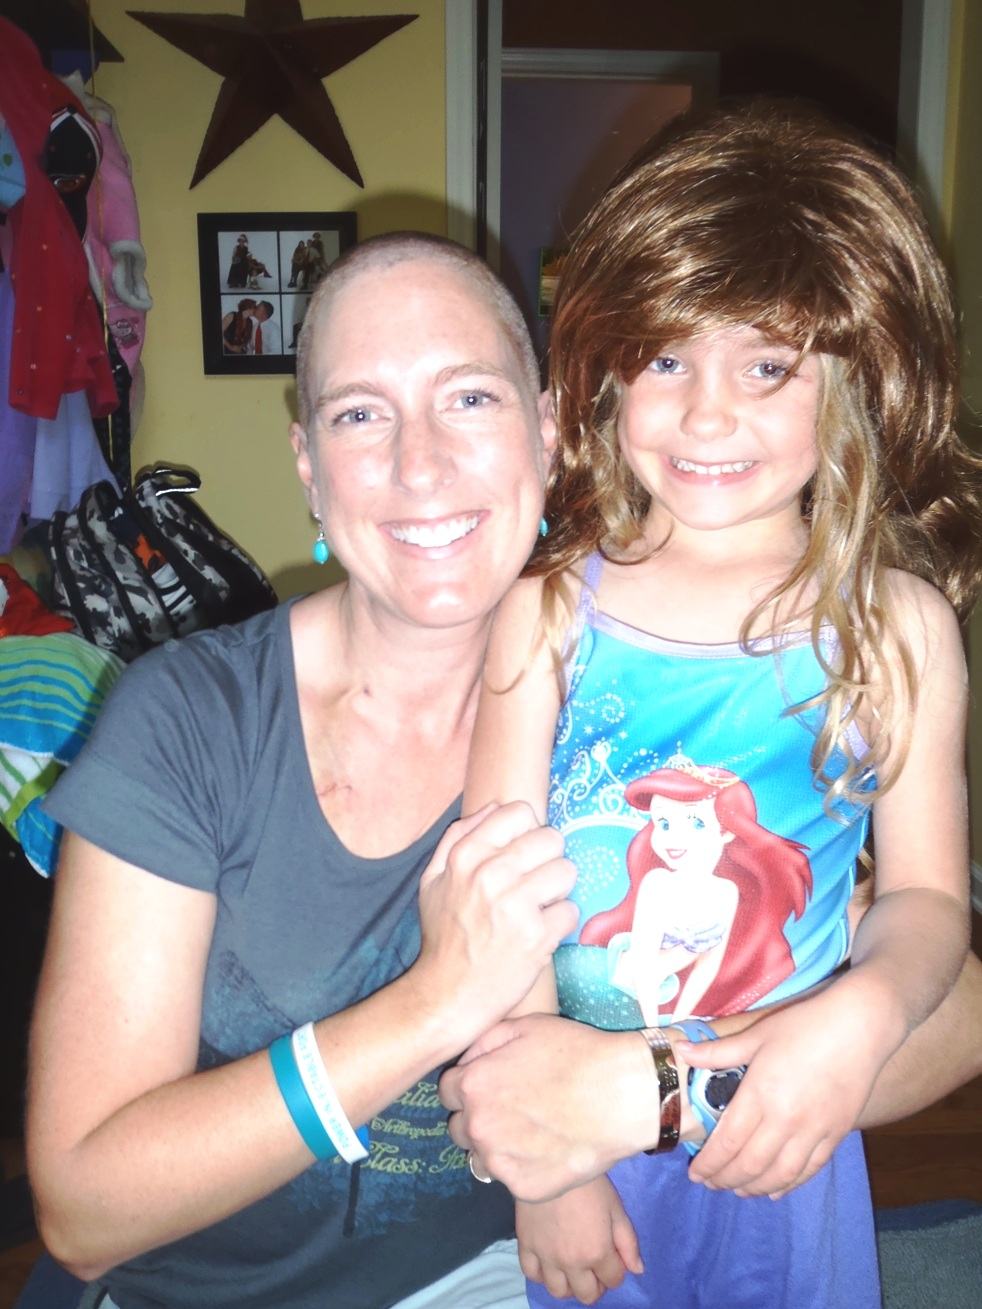 Heather+Daughter+in+Wig.jpg